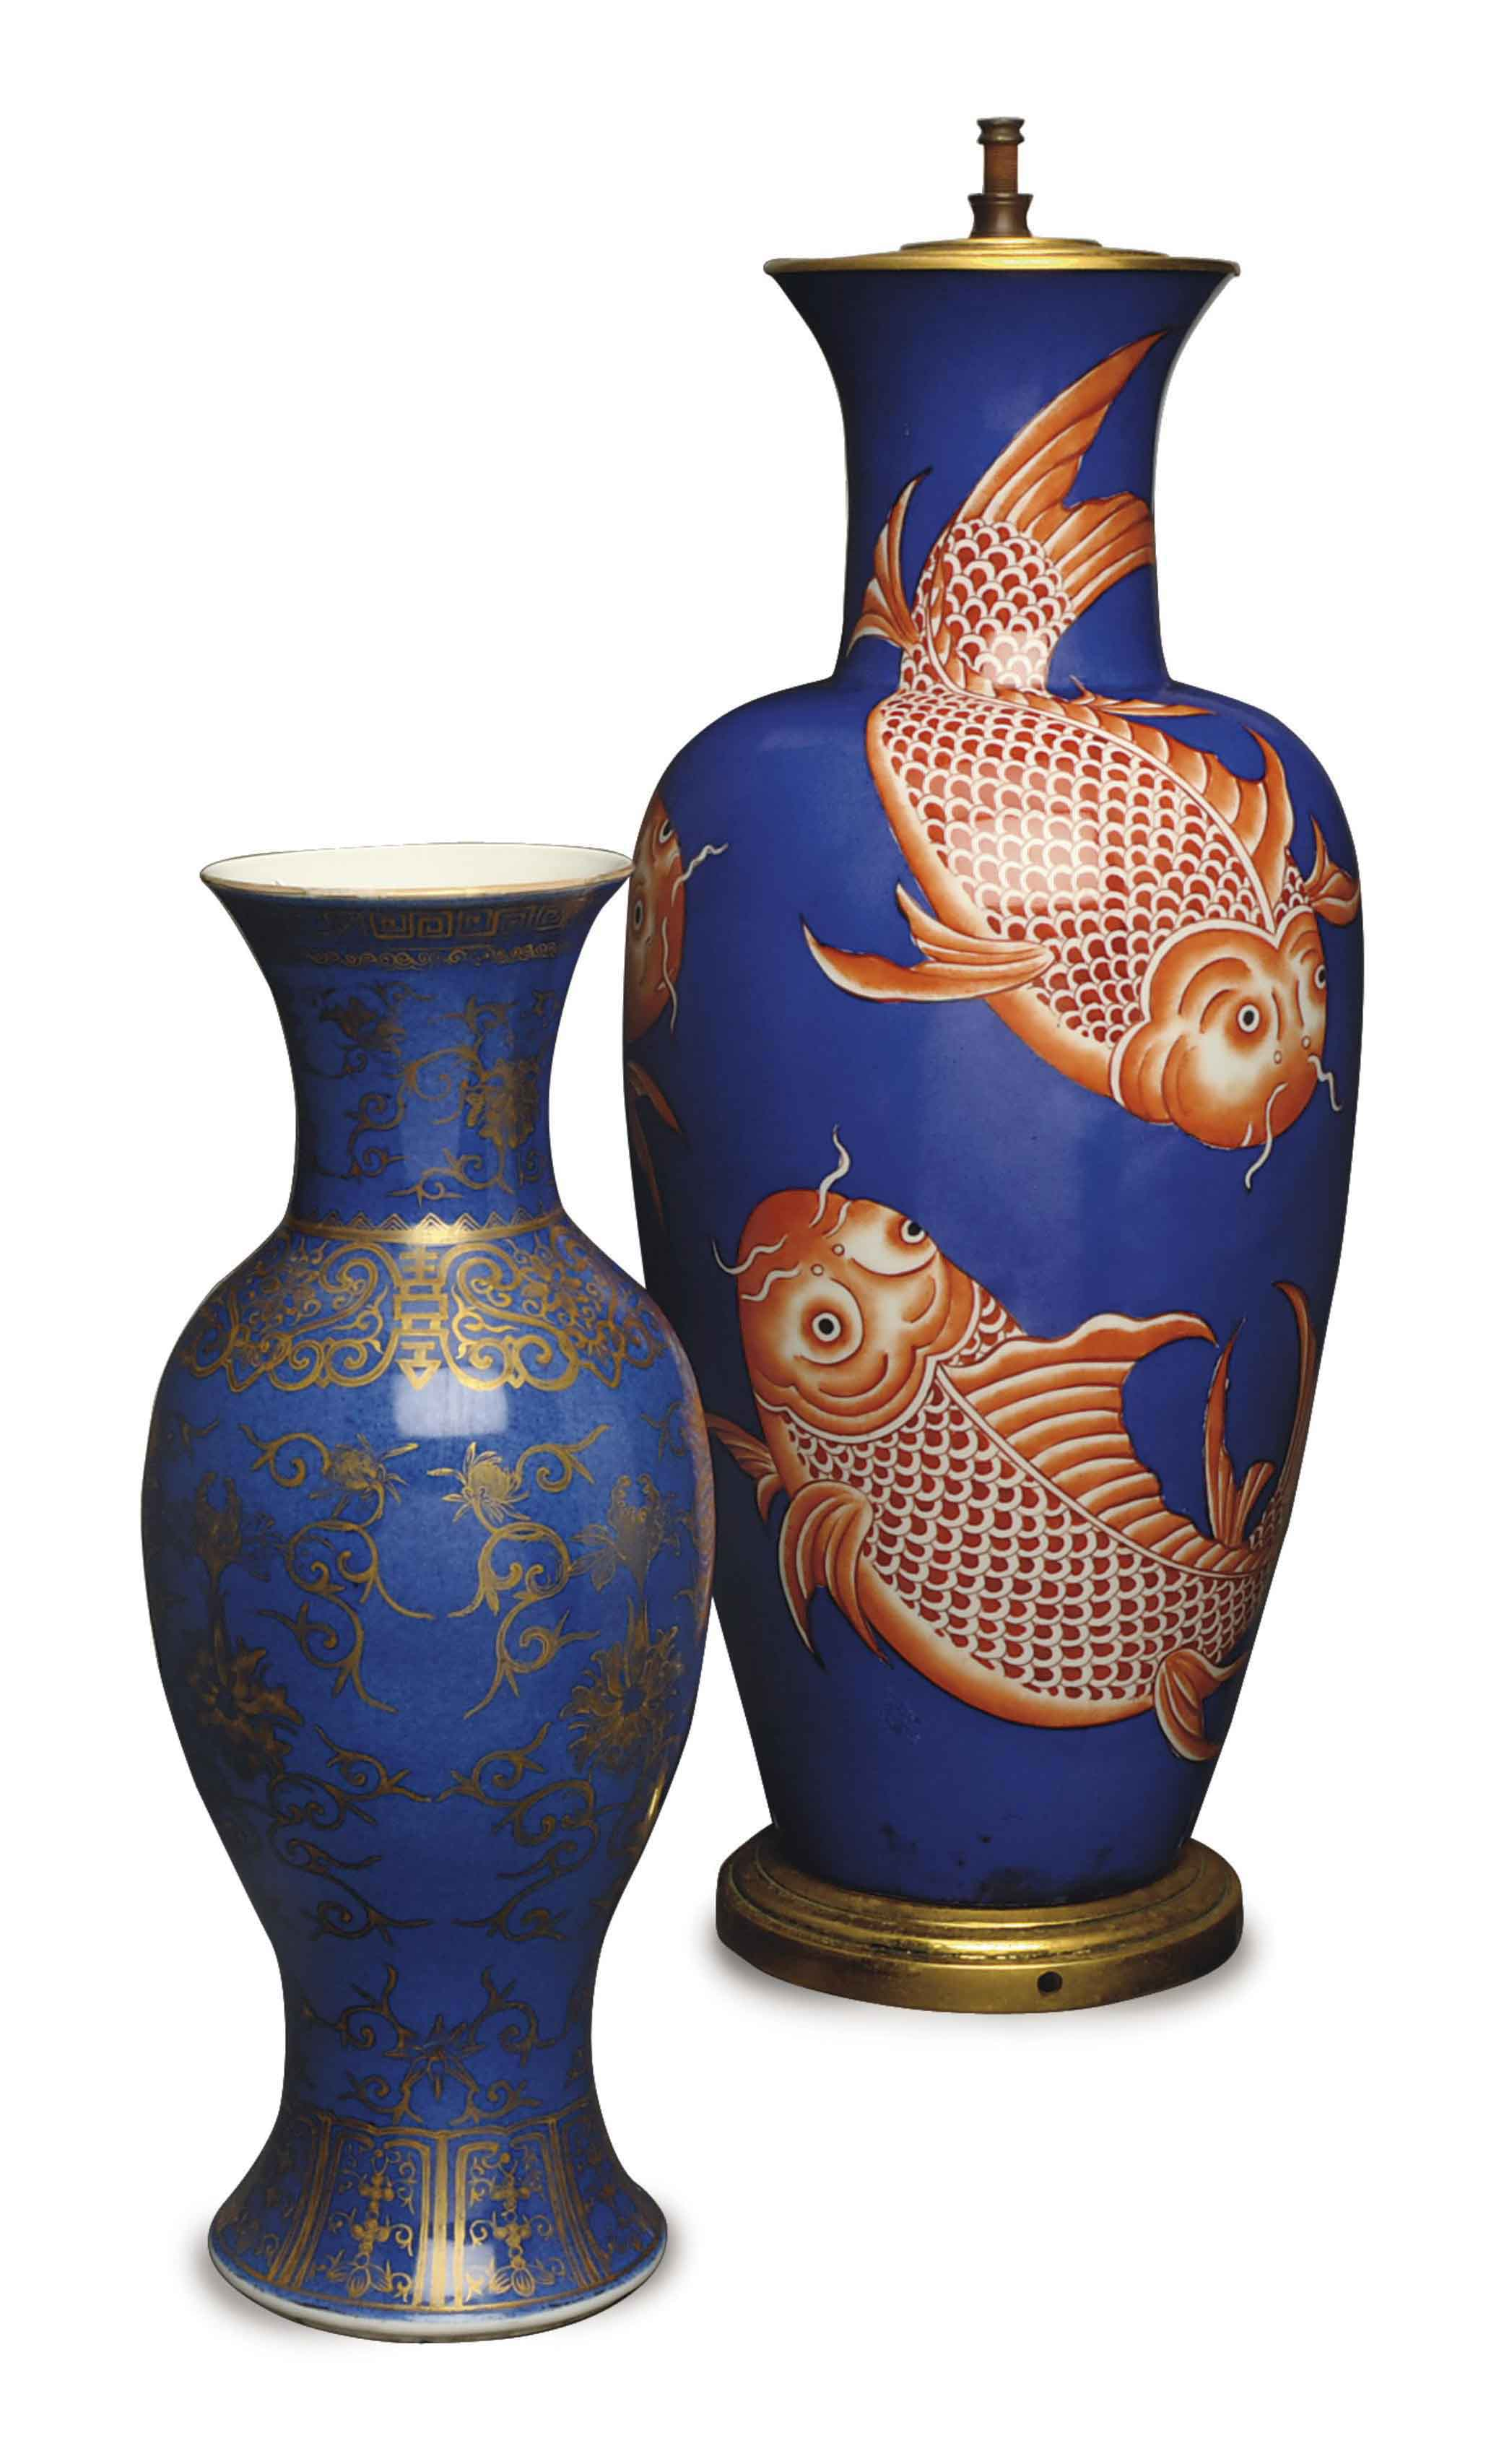 A CHINESE GILT BLUE GROUND BALUSTER VASE, AND A BLUE GROUND VASE DECORATED WITH KOI MOUNTED AS A LAMP,